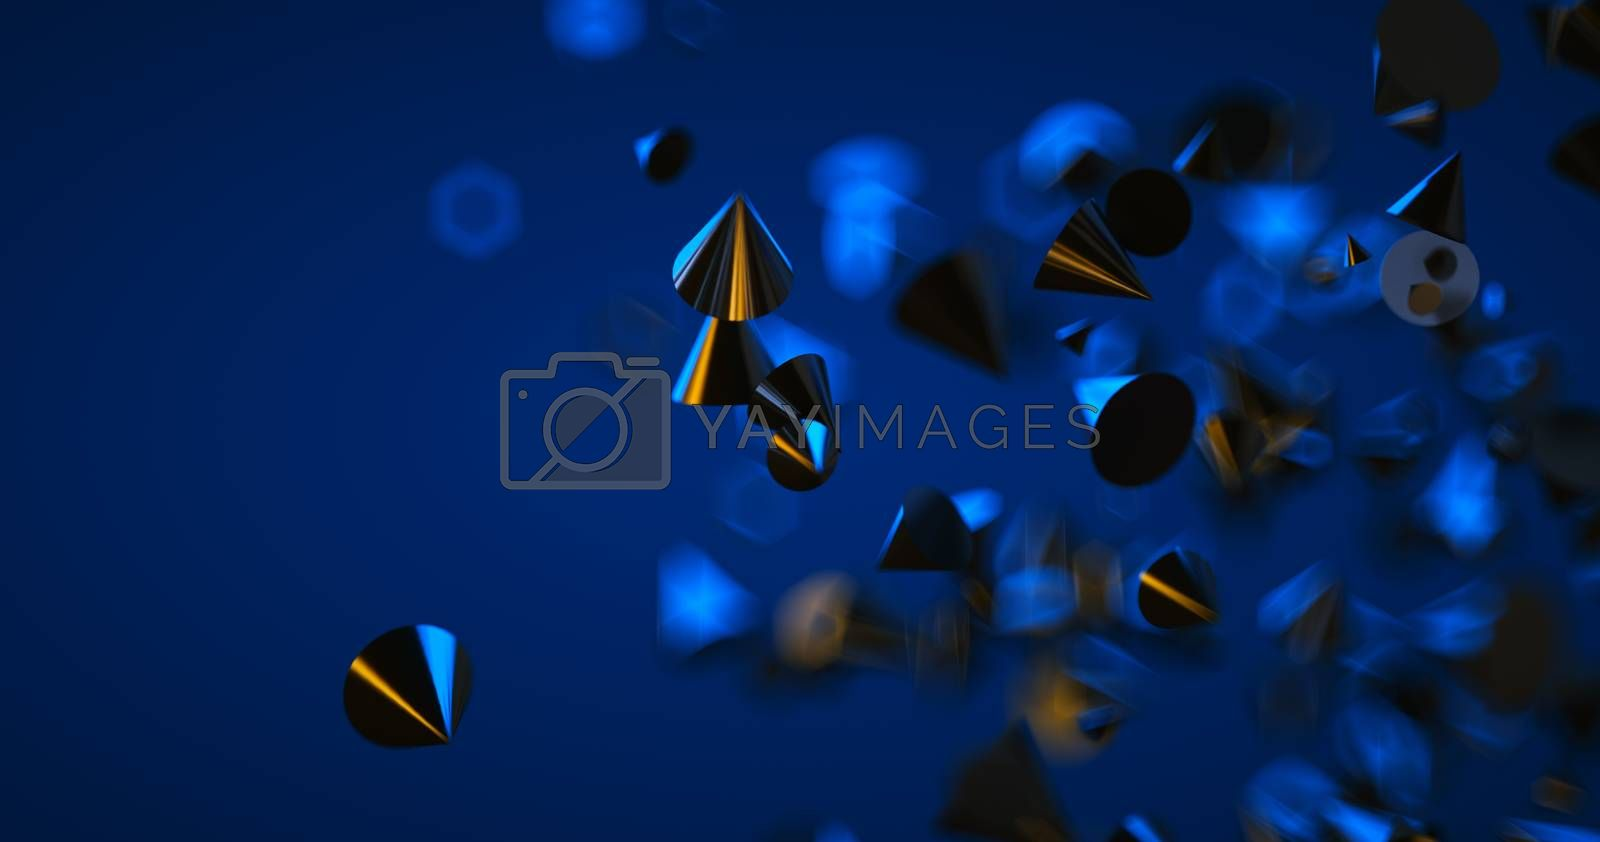 Abstract black background with geometric shapes, depth of field and bokeh. Neon futuristic backdrop. 3D render